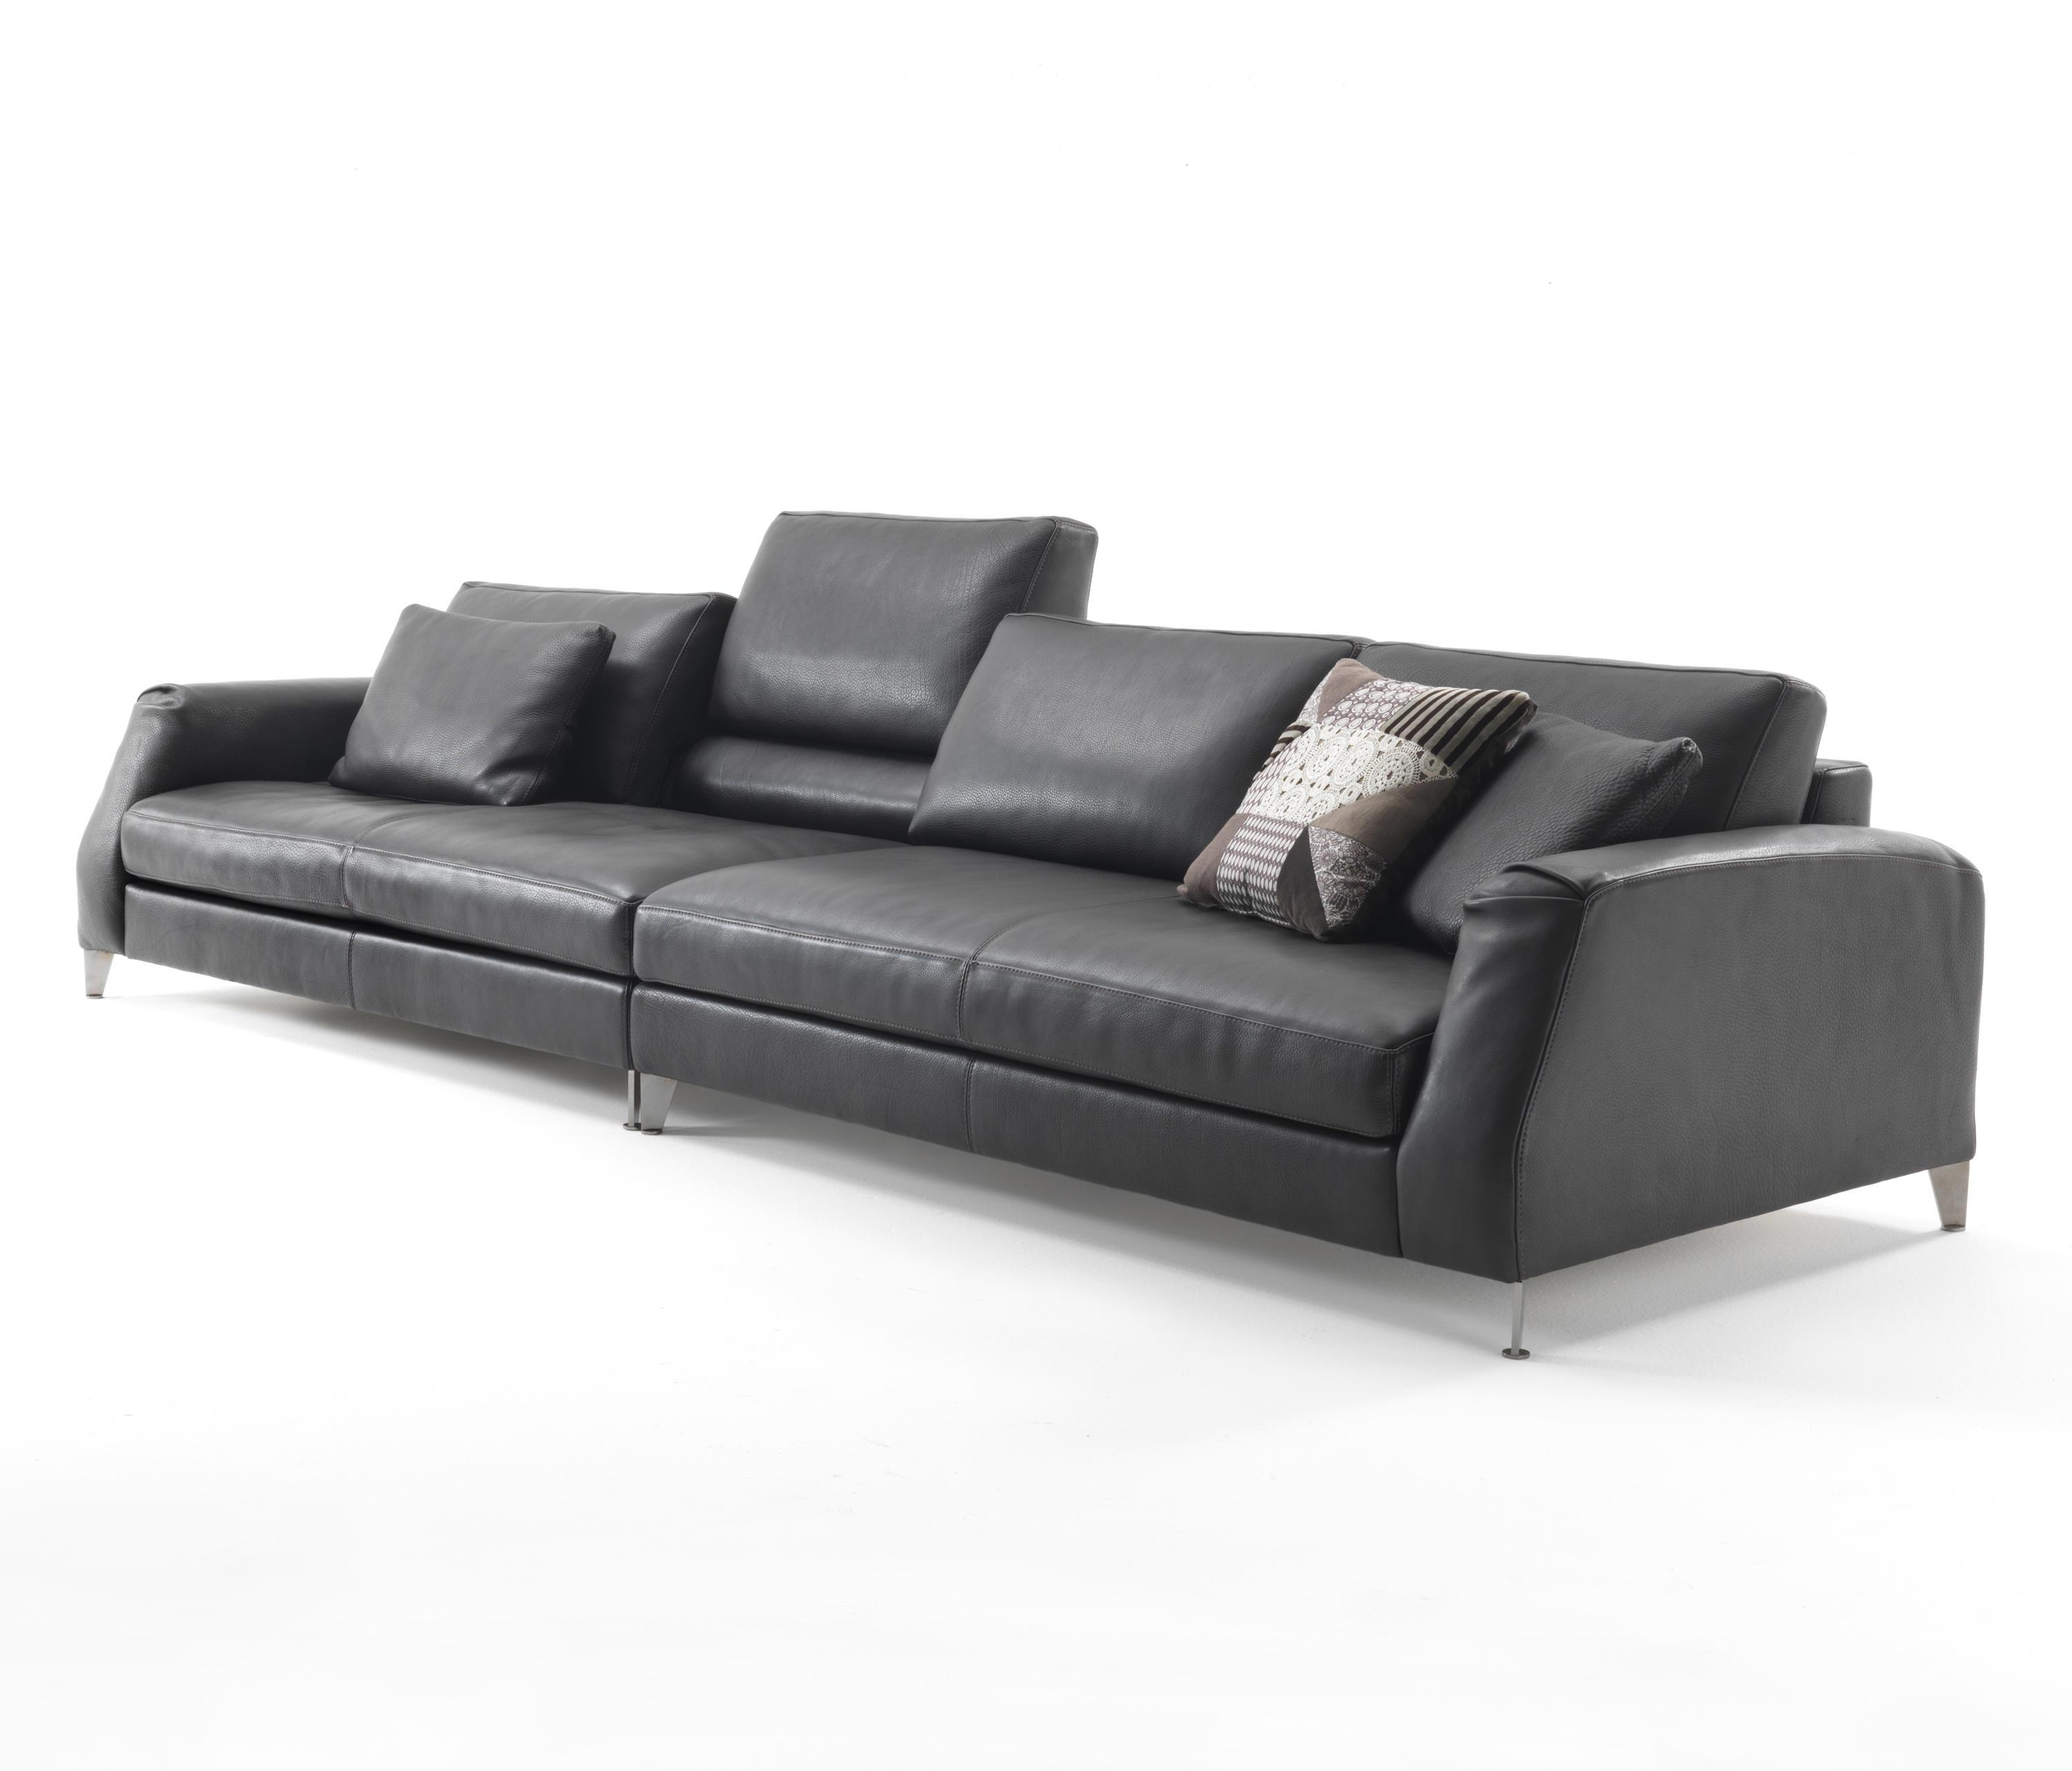 Davis Class – Sofas From Frigerio | Architonic In Davis Sofas (Image 3 of 20)